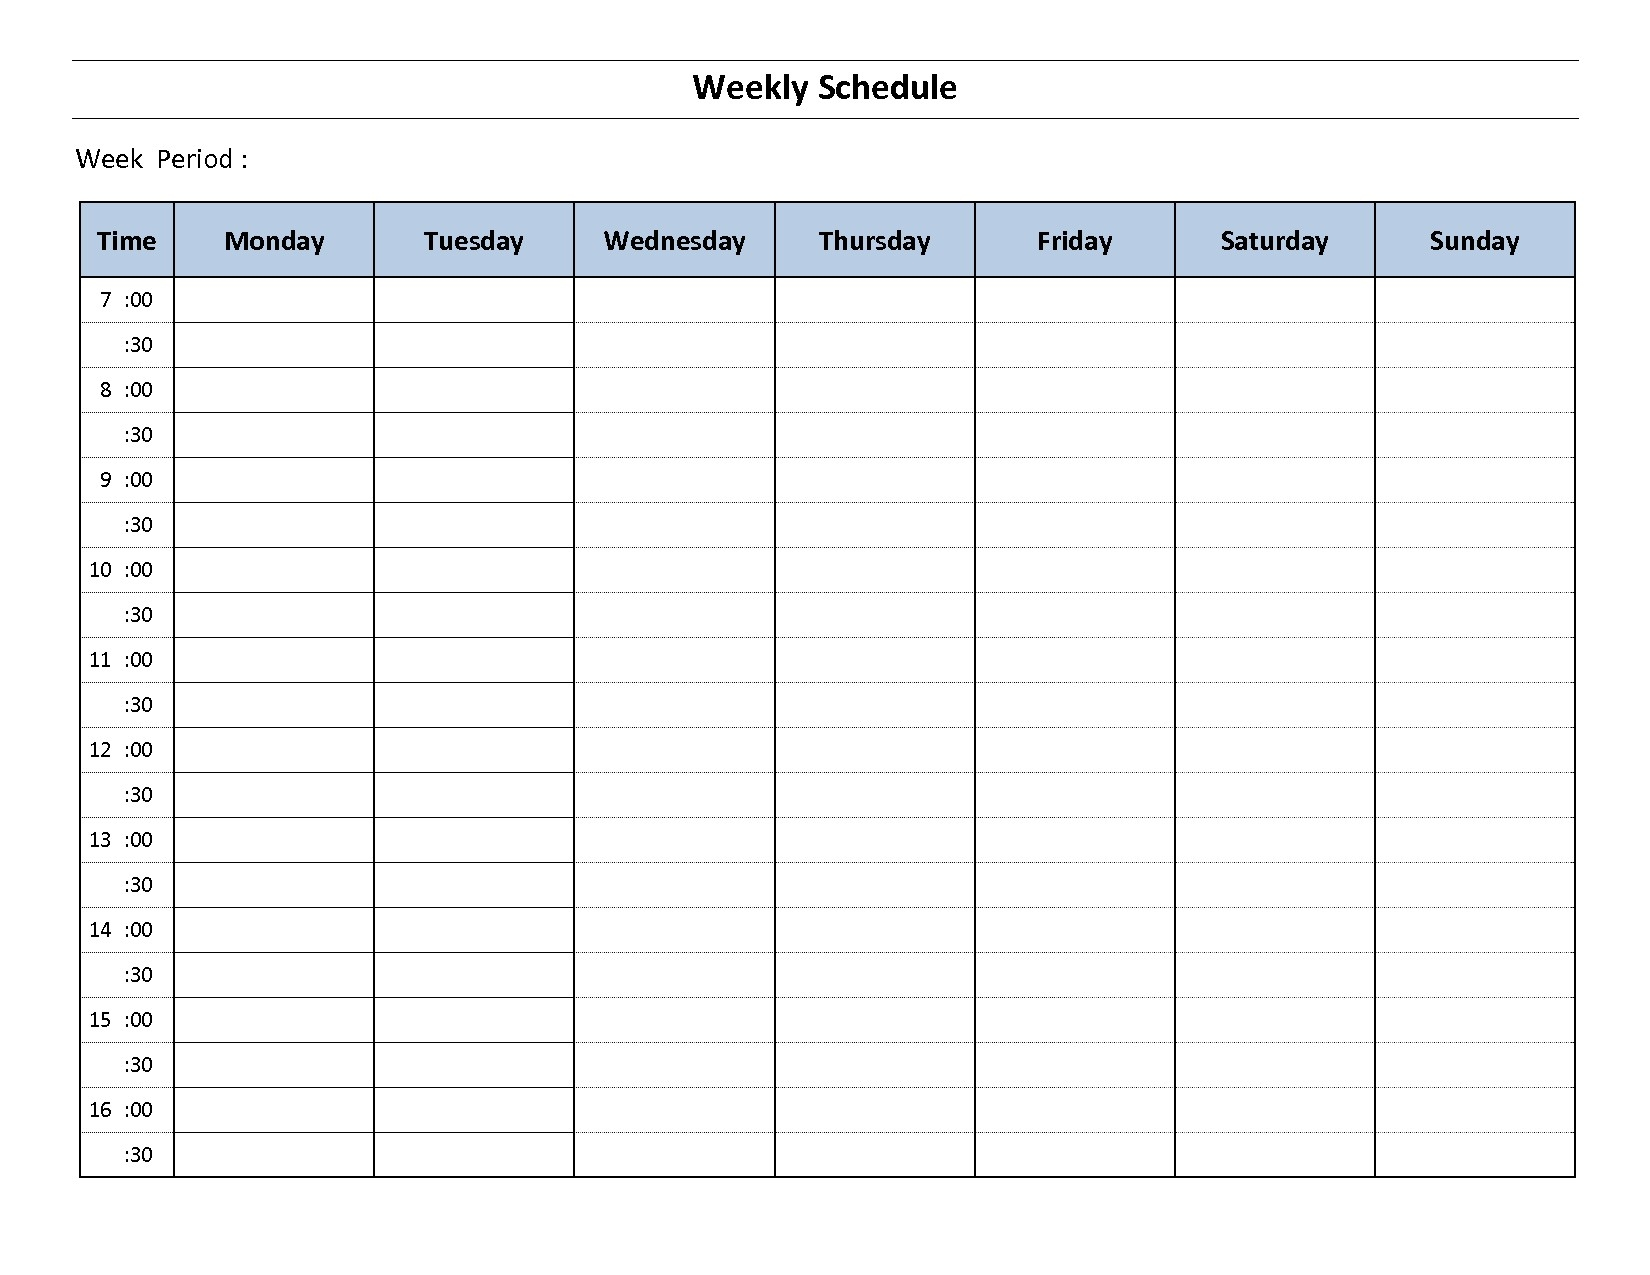 Monday To Friday Calendar Pdf Tags: Monday Through Friday Calendar with regard to Monday Through Friday Calendar With Times